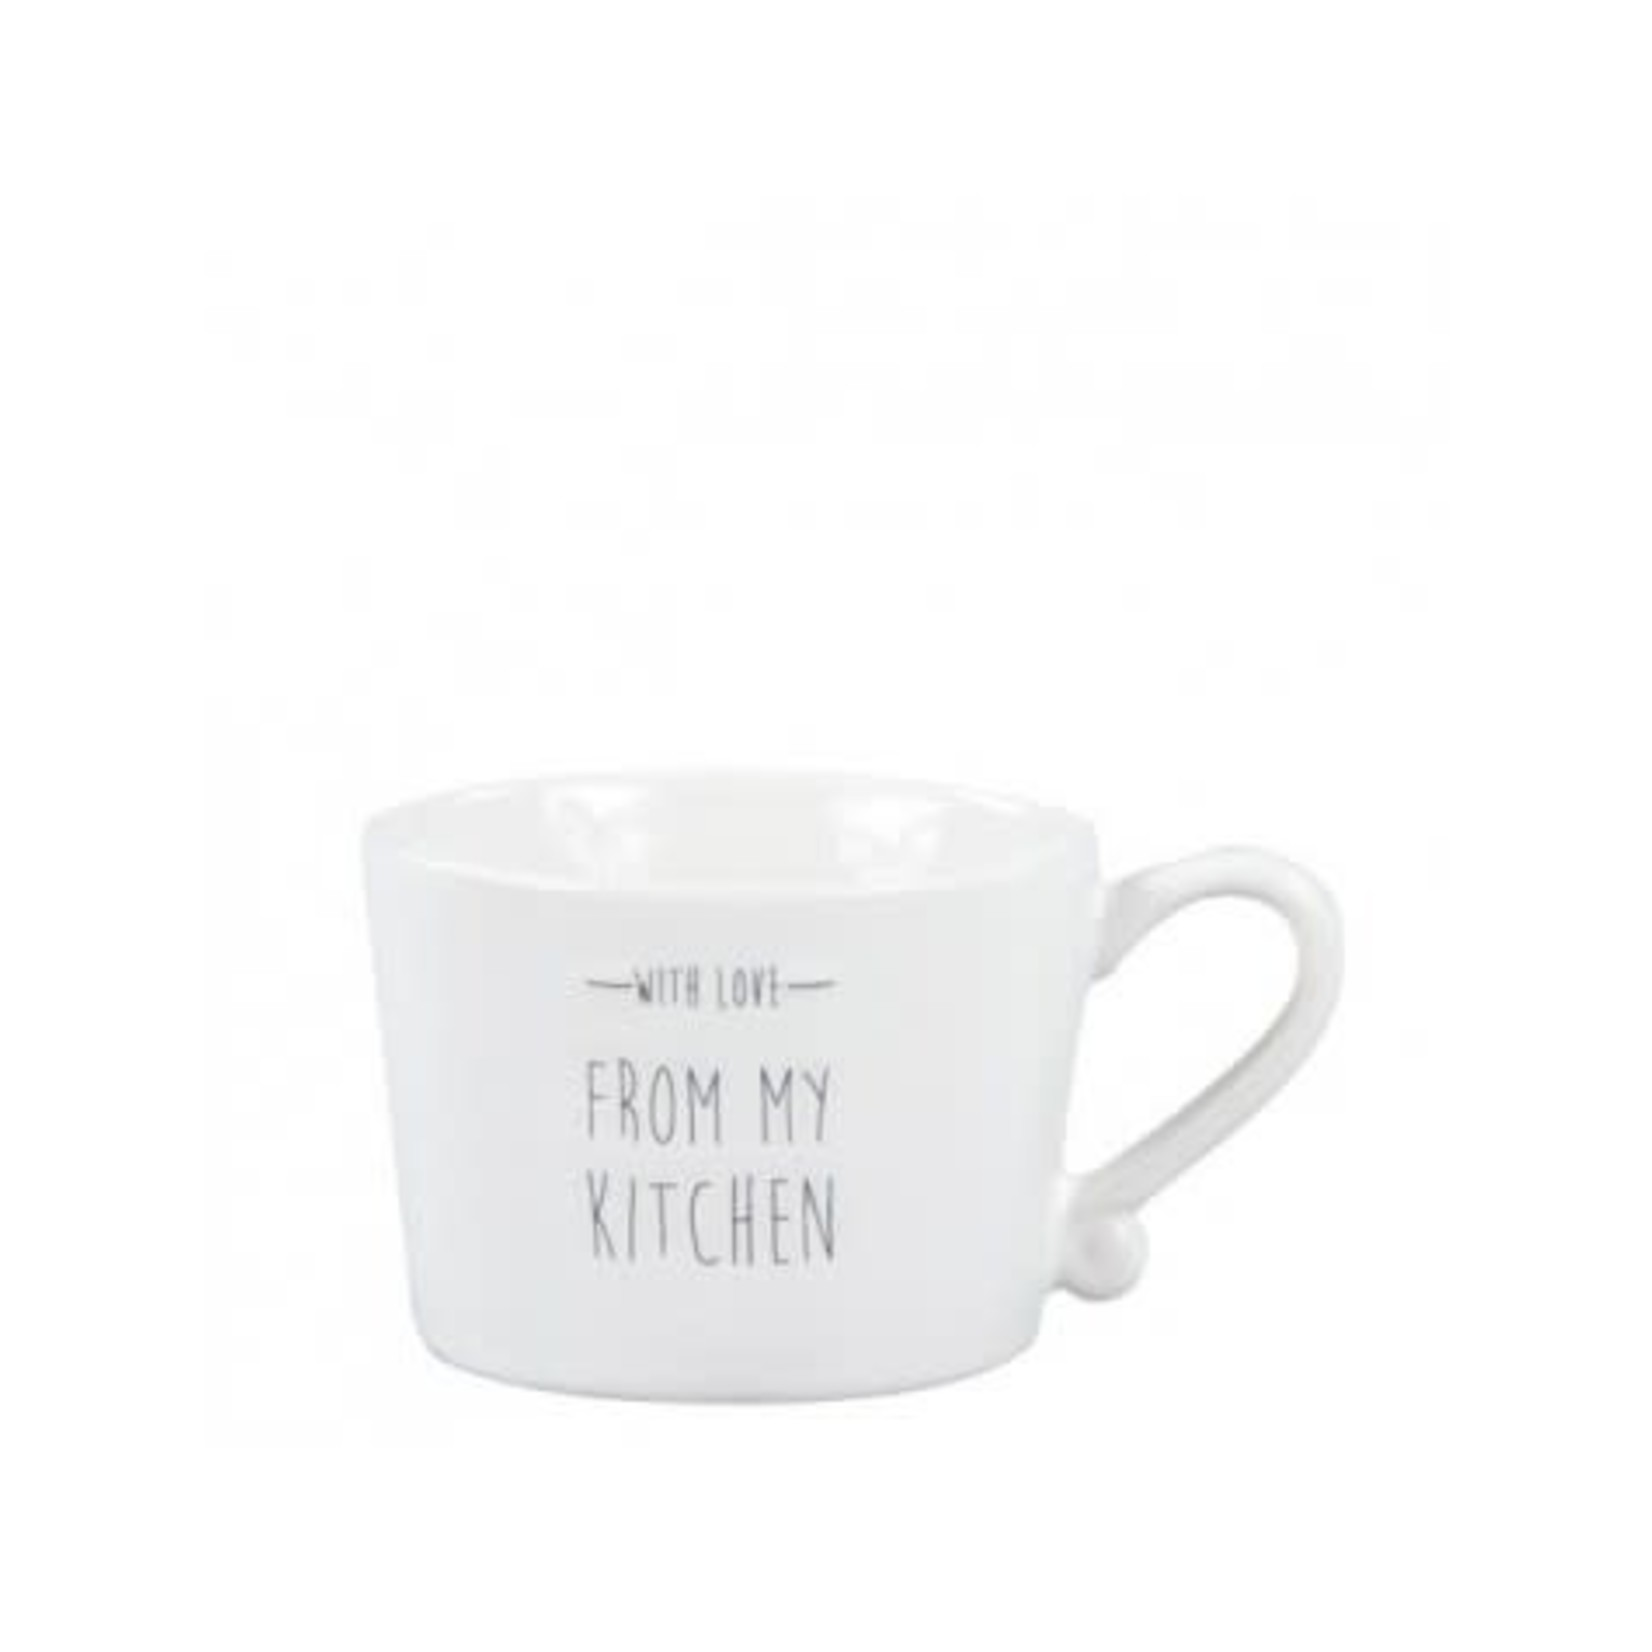 Bastion Collections Cup small White With Love From My Kitchen in Grey